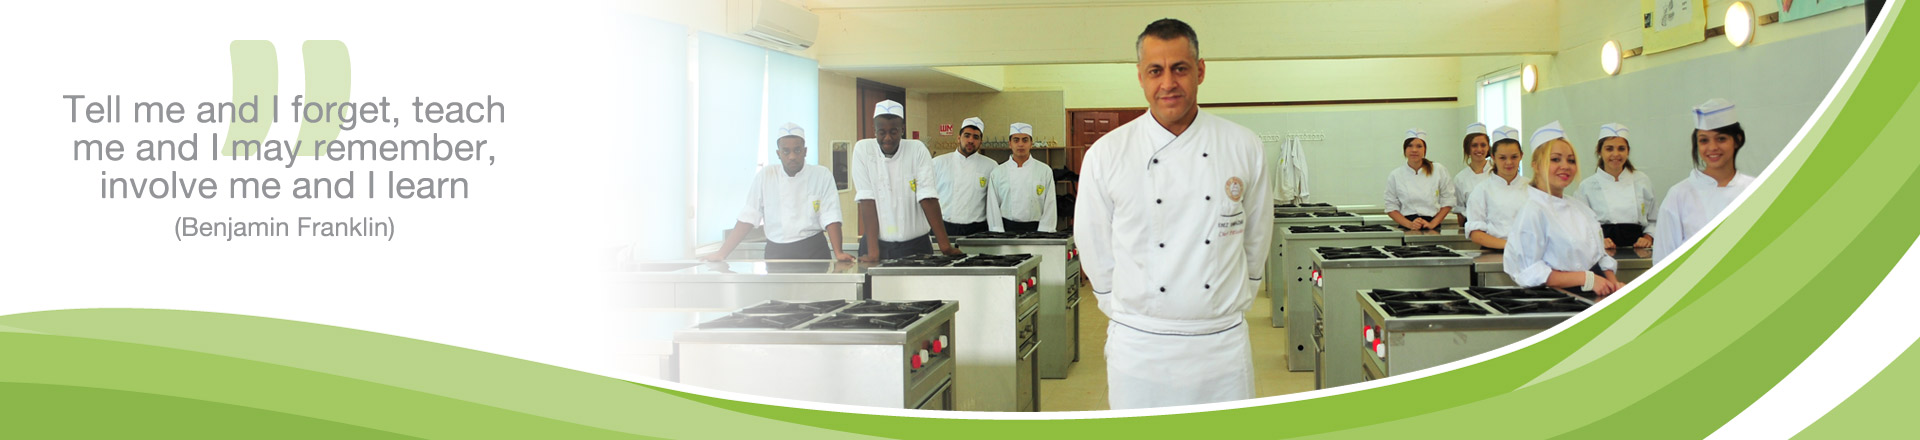 ayanot_header_1920x440_home_page_culinary_eng